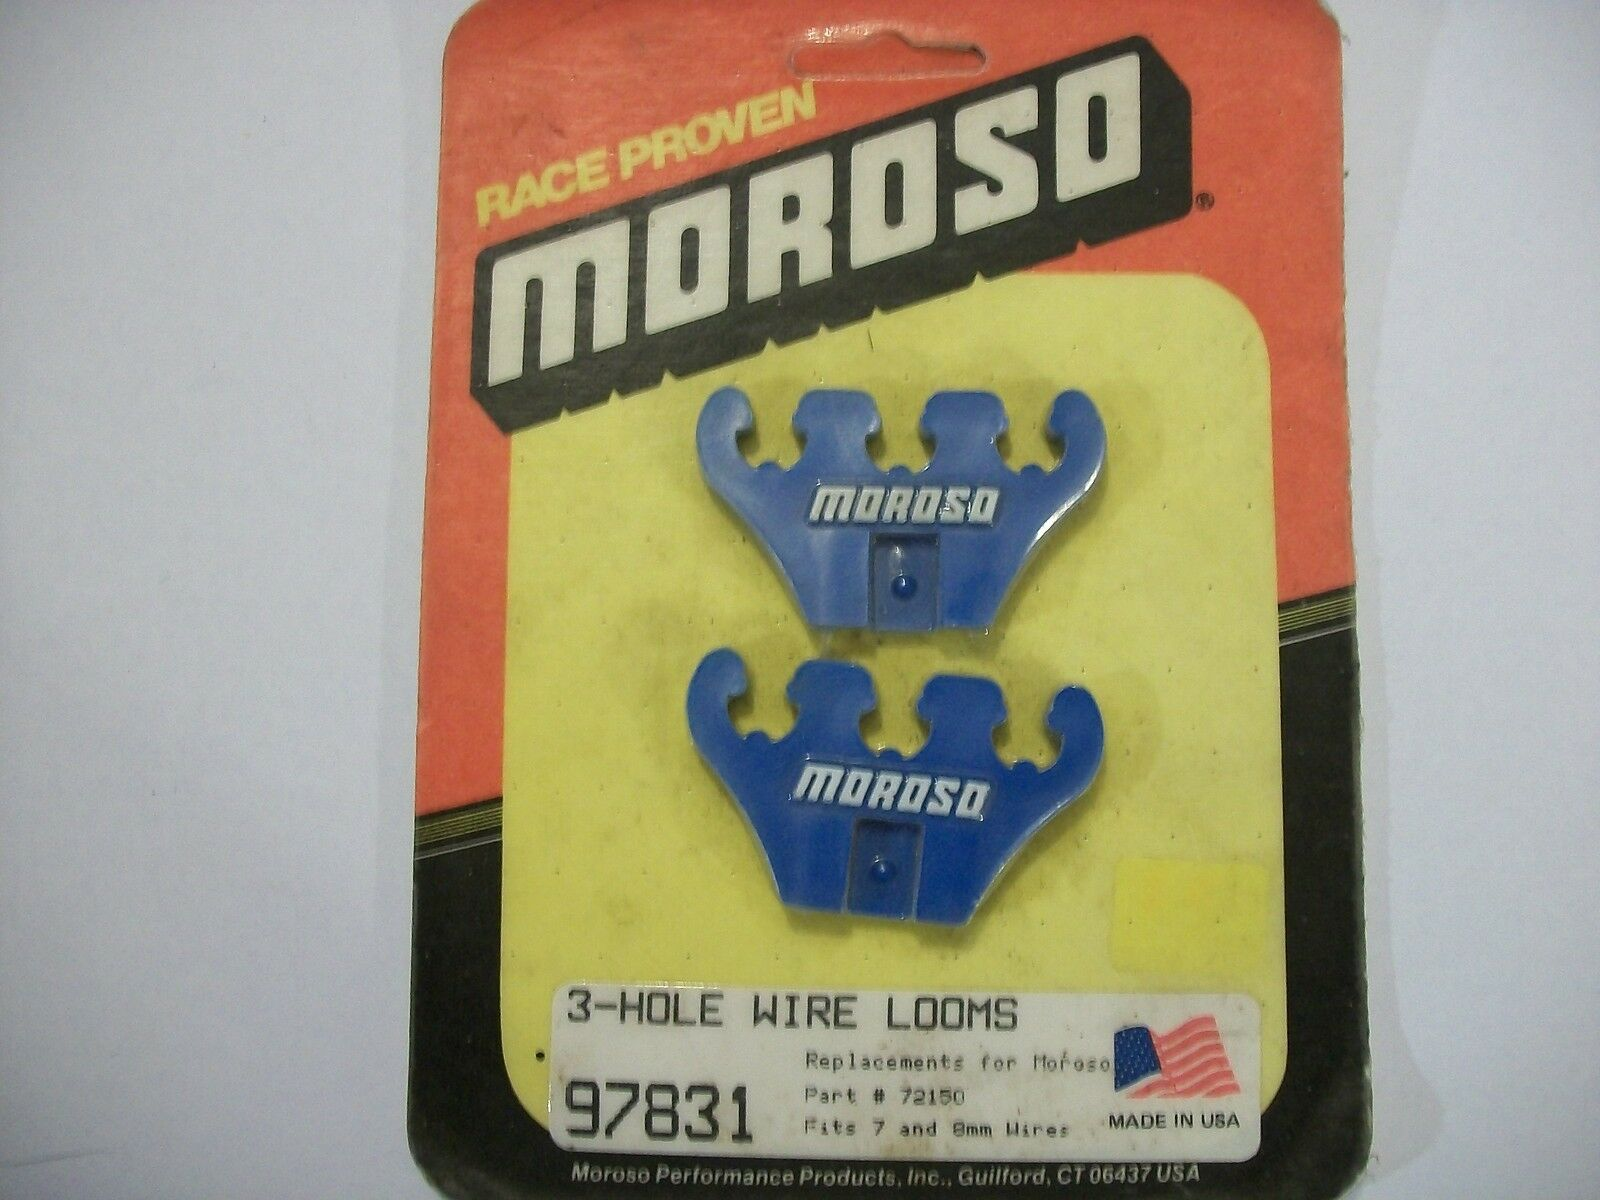 FITS 7 AND 8MM WIRES MOROSO PERFORMANCE PRODUCTS 3-HOLE WIRE LOOMS 97831